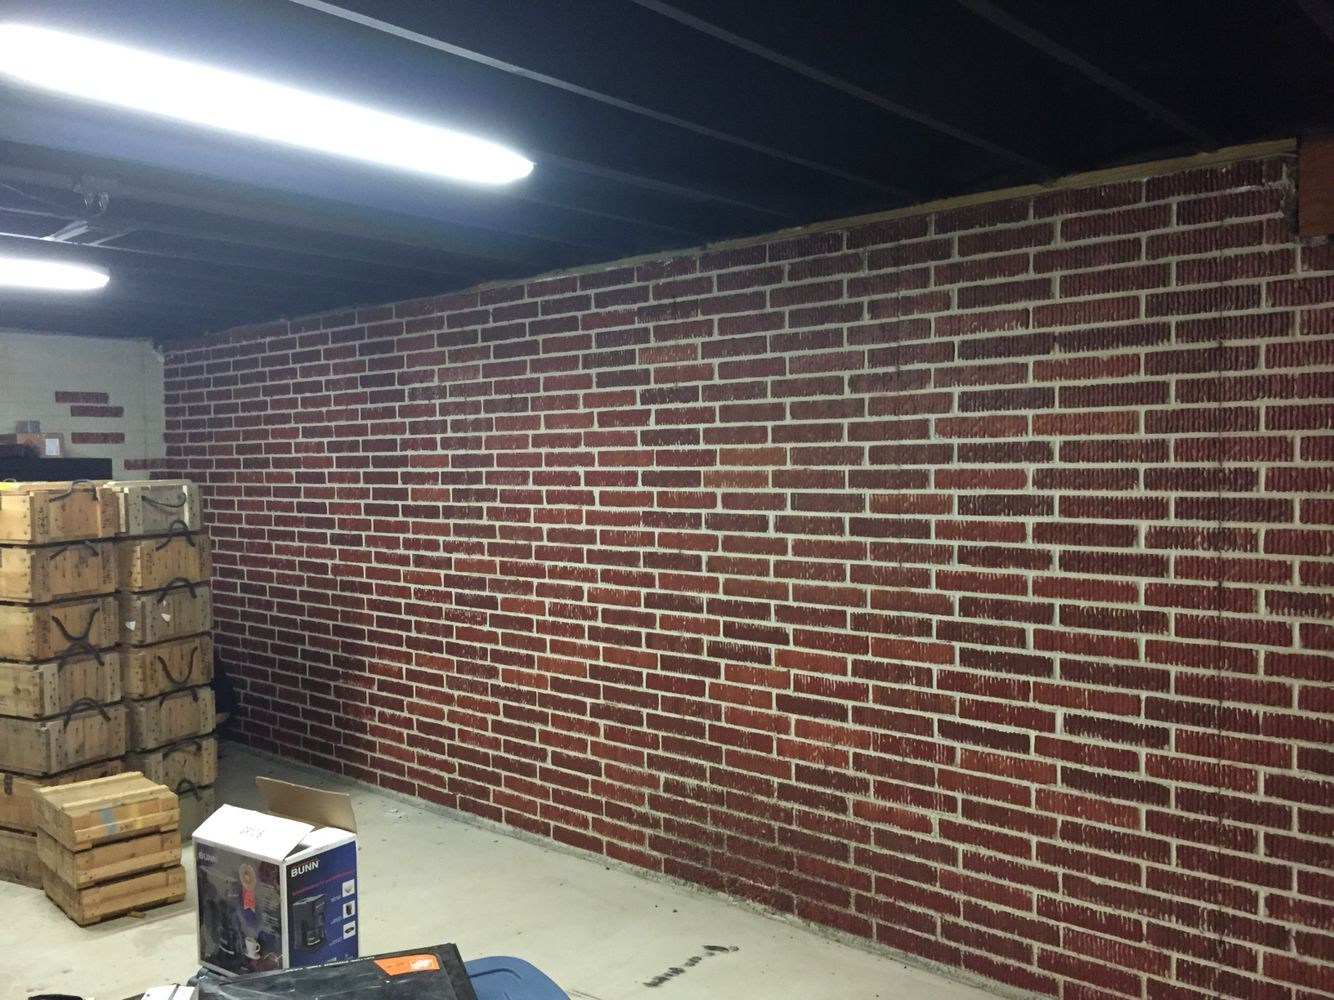 painted brick form poured concrete basement walls with